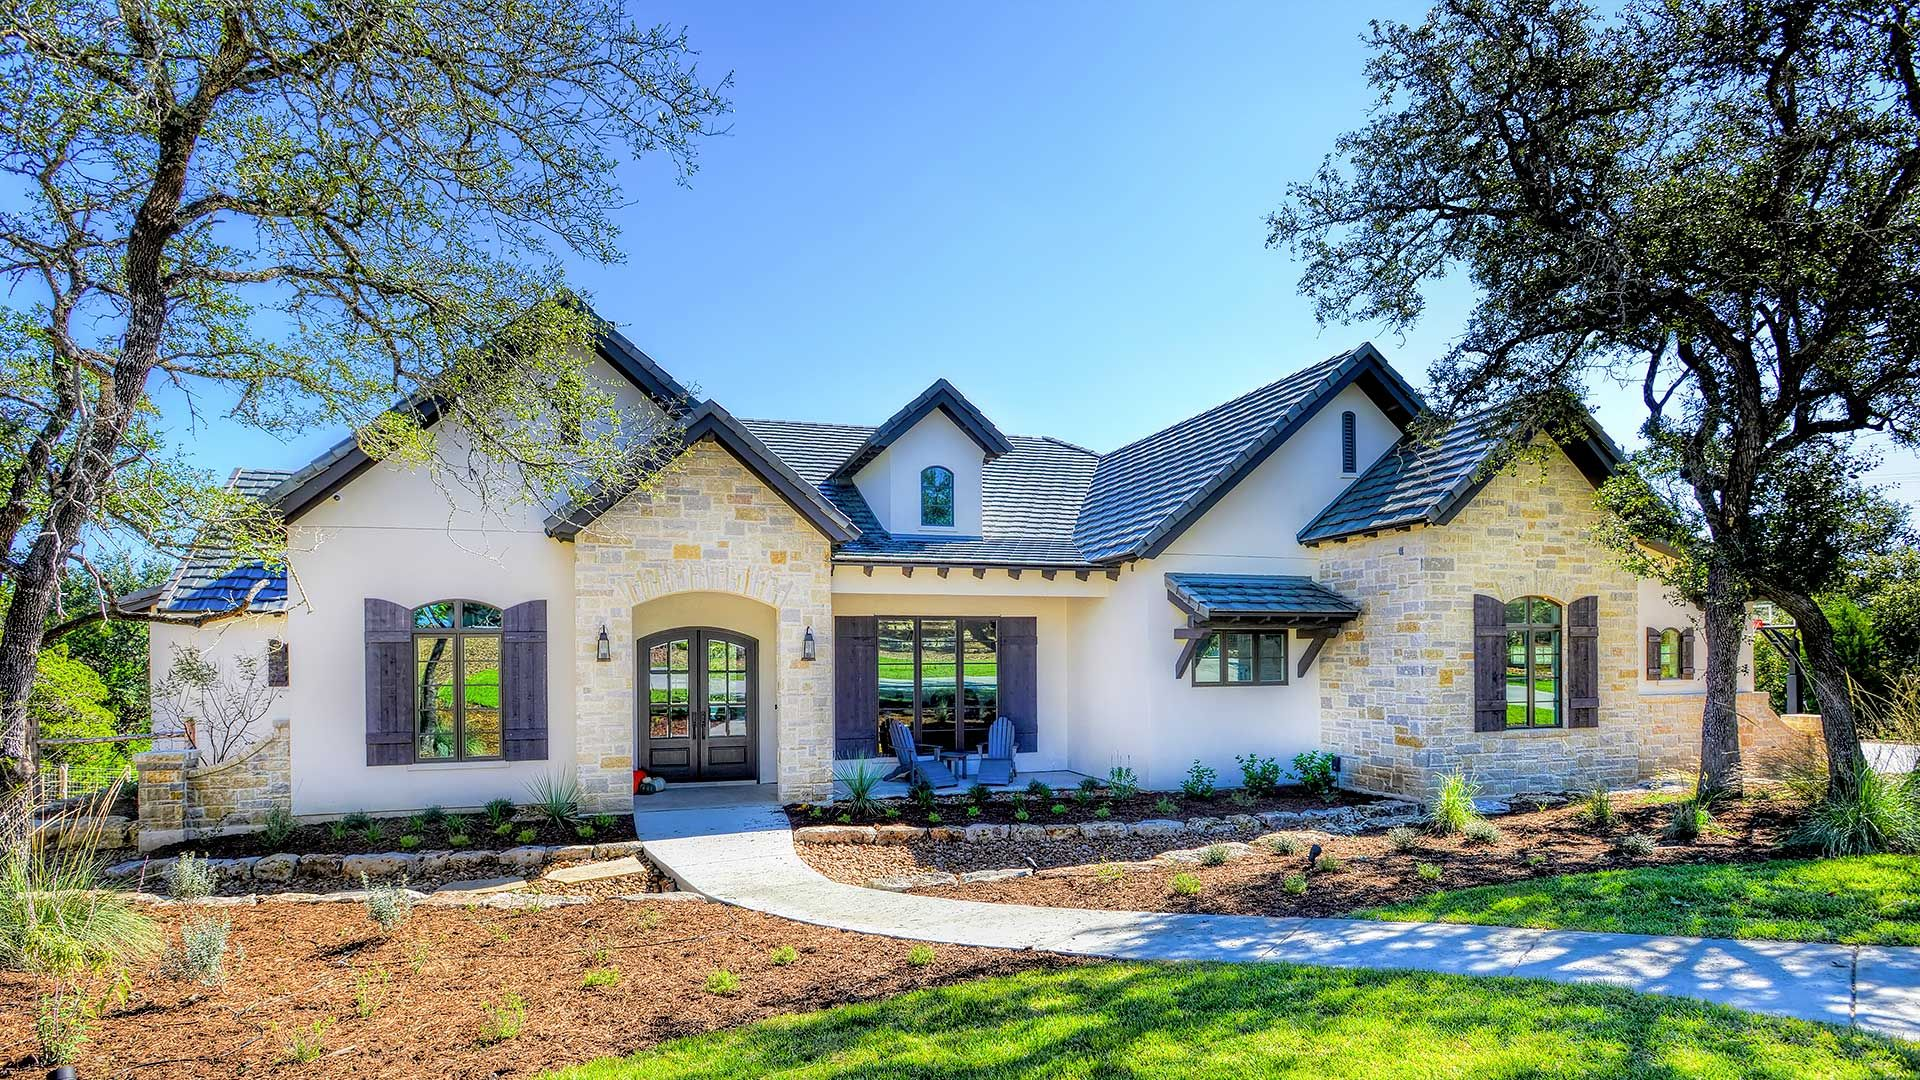 Here is the Innovative Image Of Patio Homes for Sale New Braunfels Tx